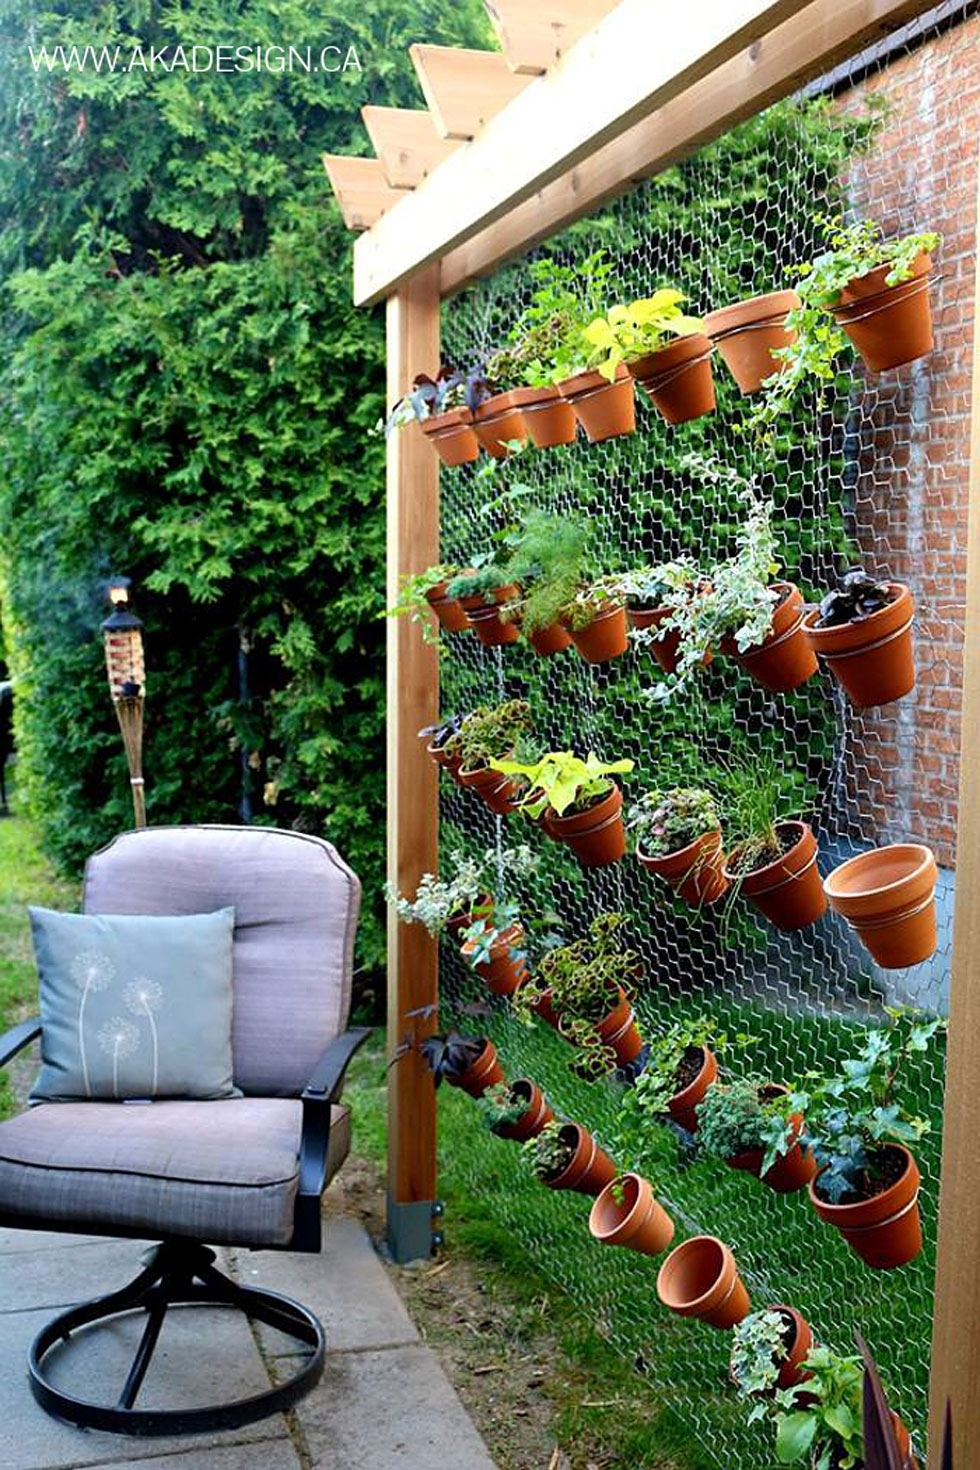 26 Creative Ways To Plant A Vertical Garden - How To Make A with regard to The Best Ideas For Plantation Gardens Apartments